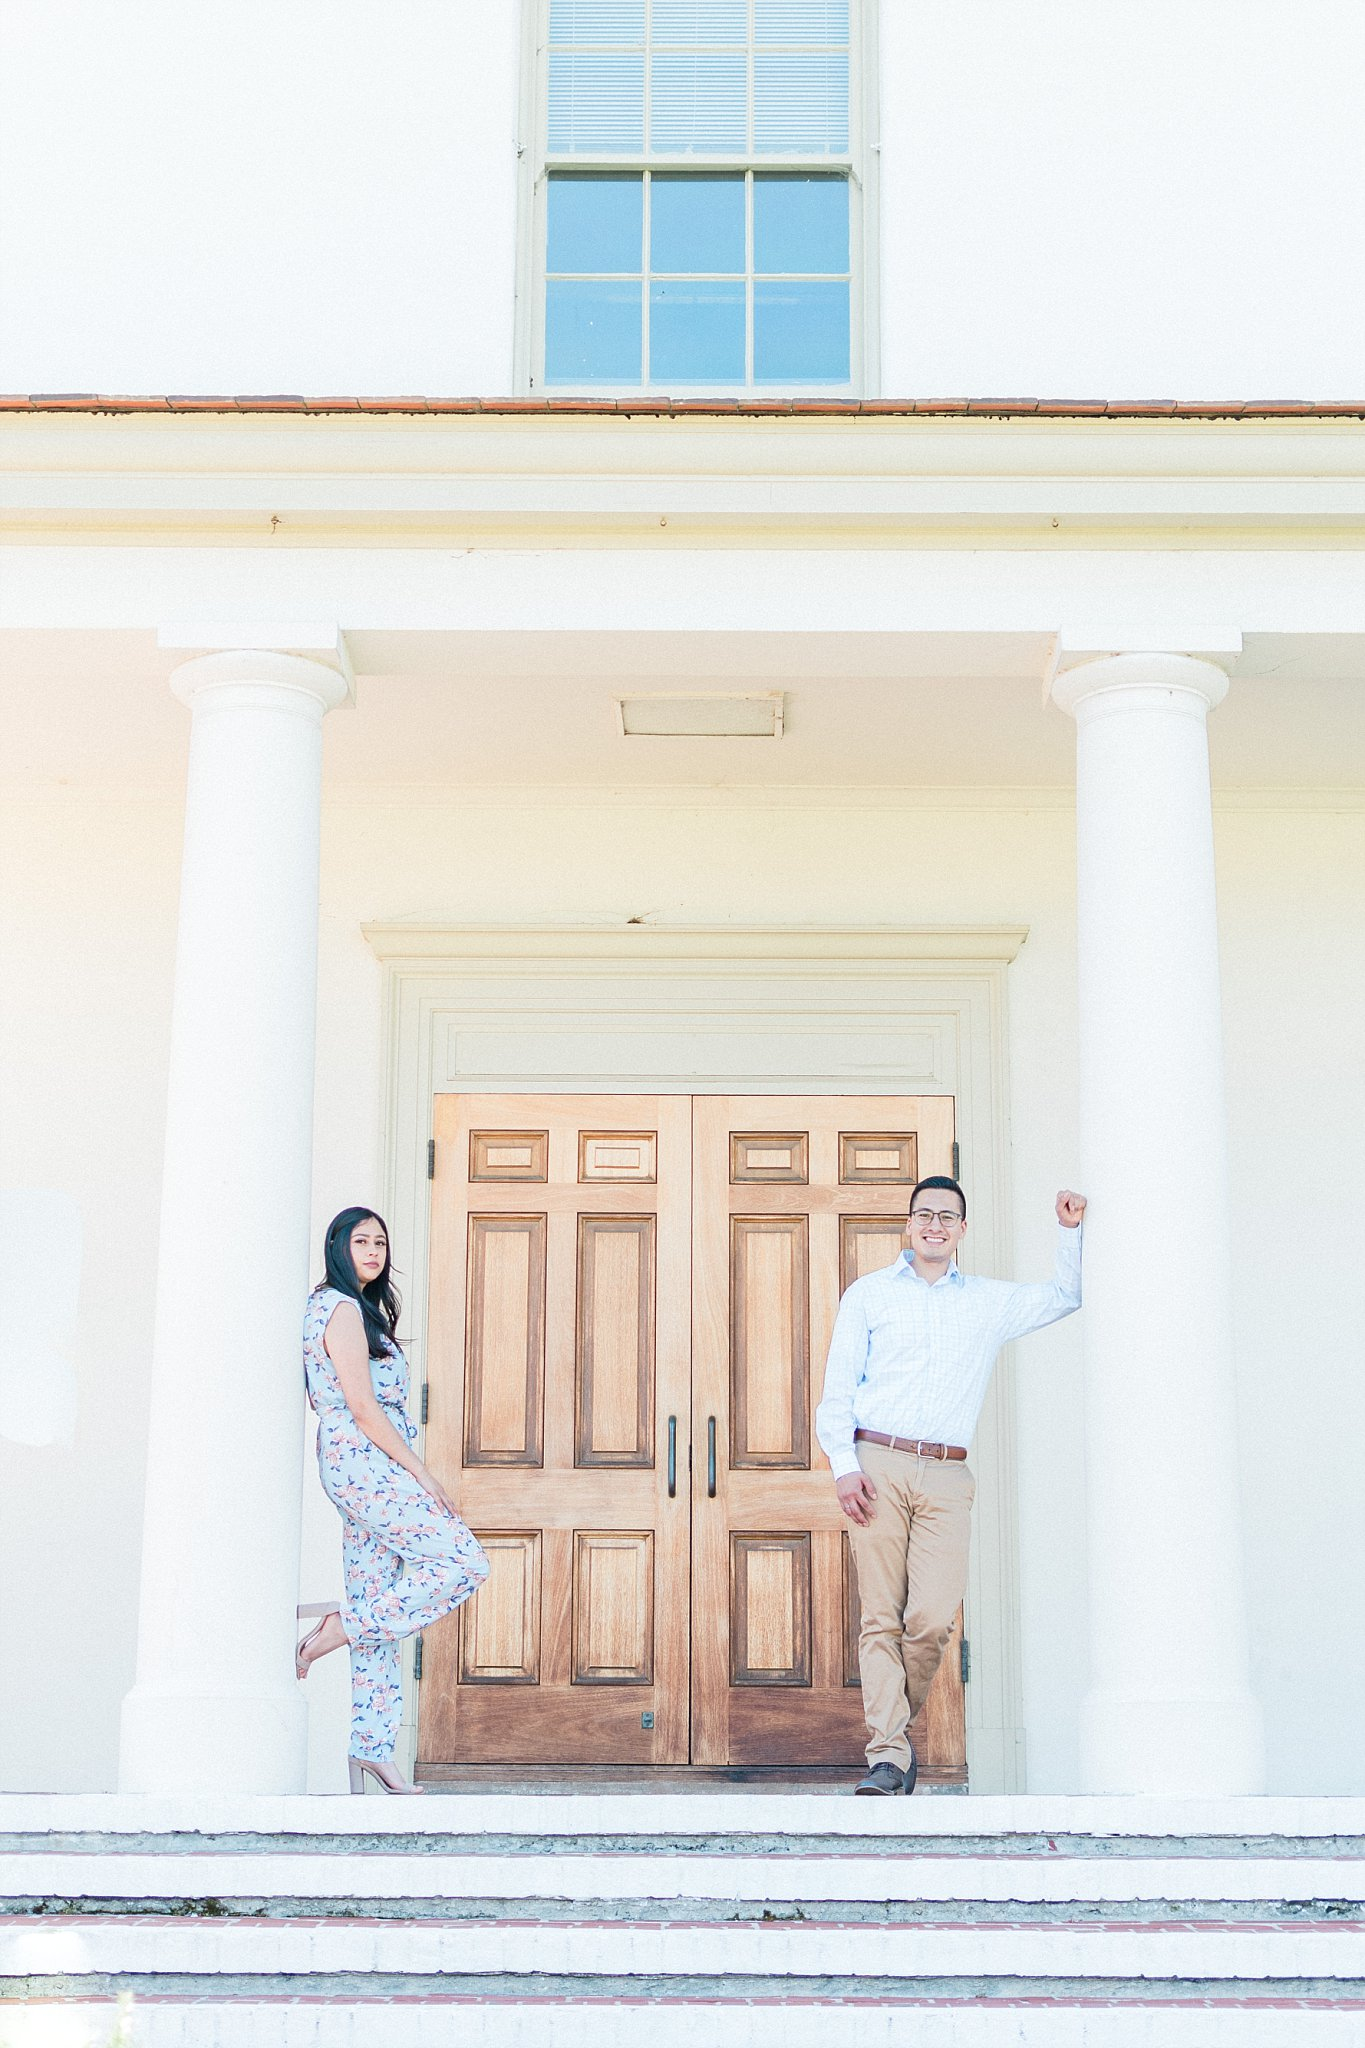 monterey-engagement-photographer-city-hall-drew-zavala-khrystal-chris_0058.jpg